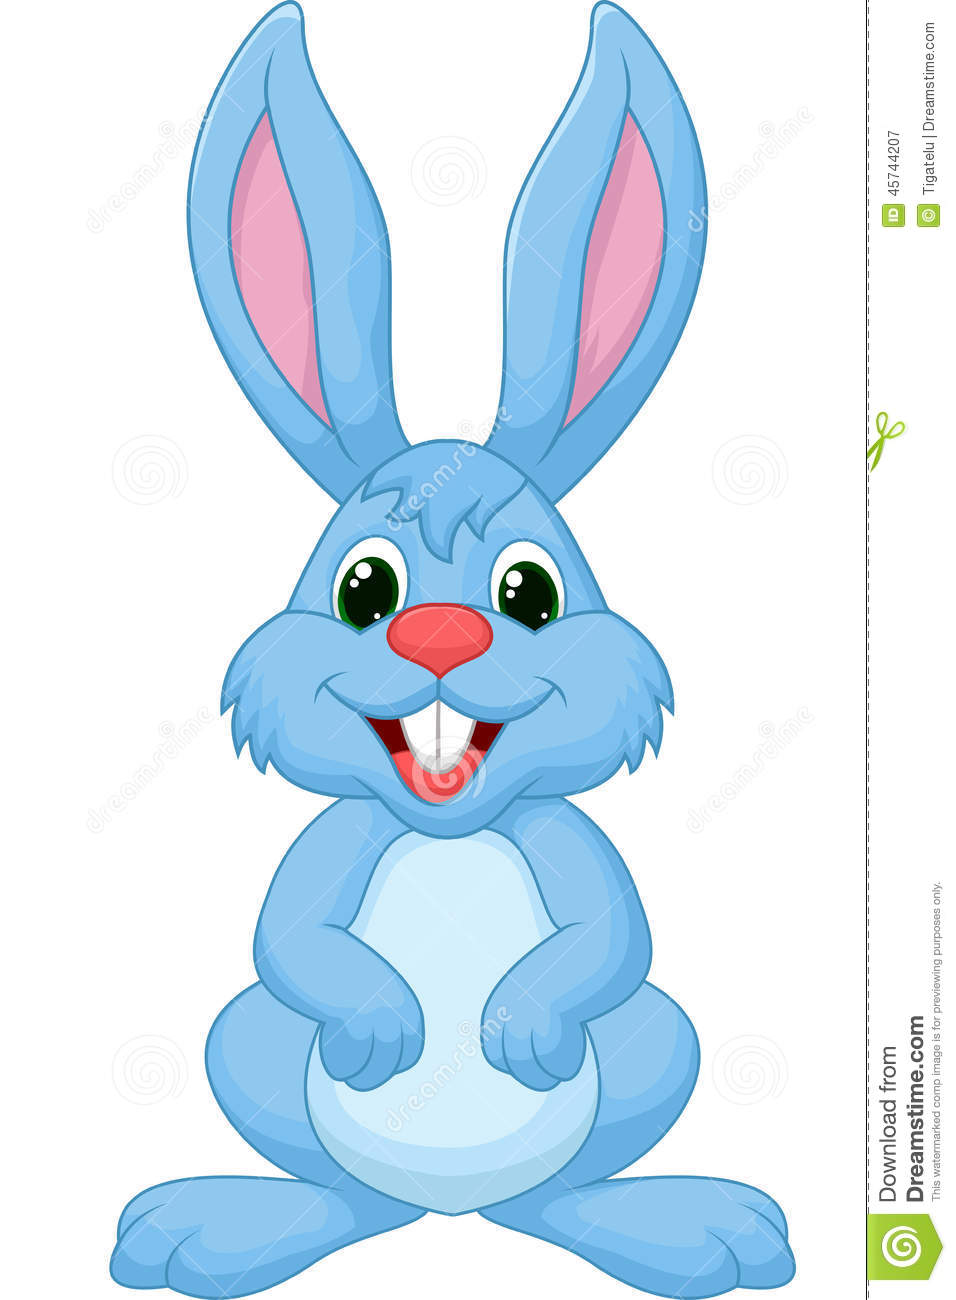 Cute Rabbit Cartoon Stock Vector - Image: 45744207